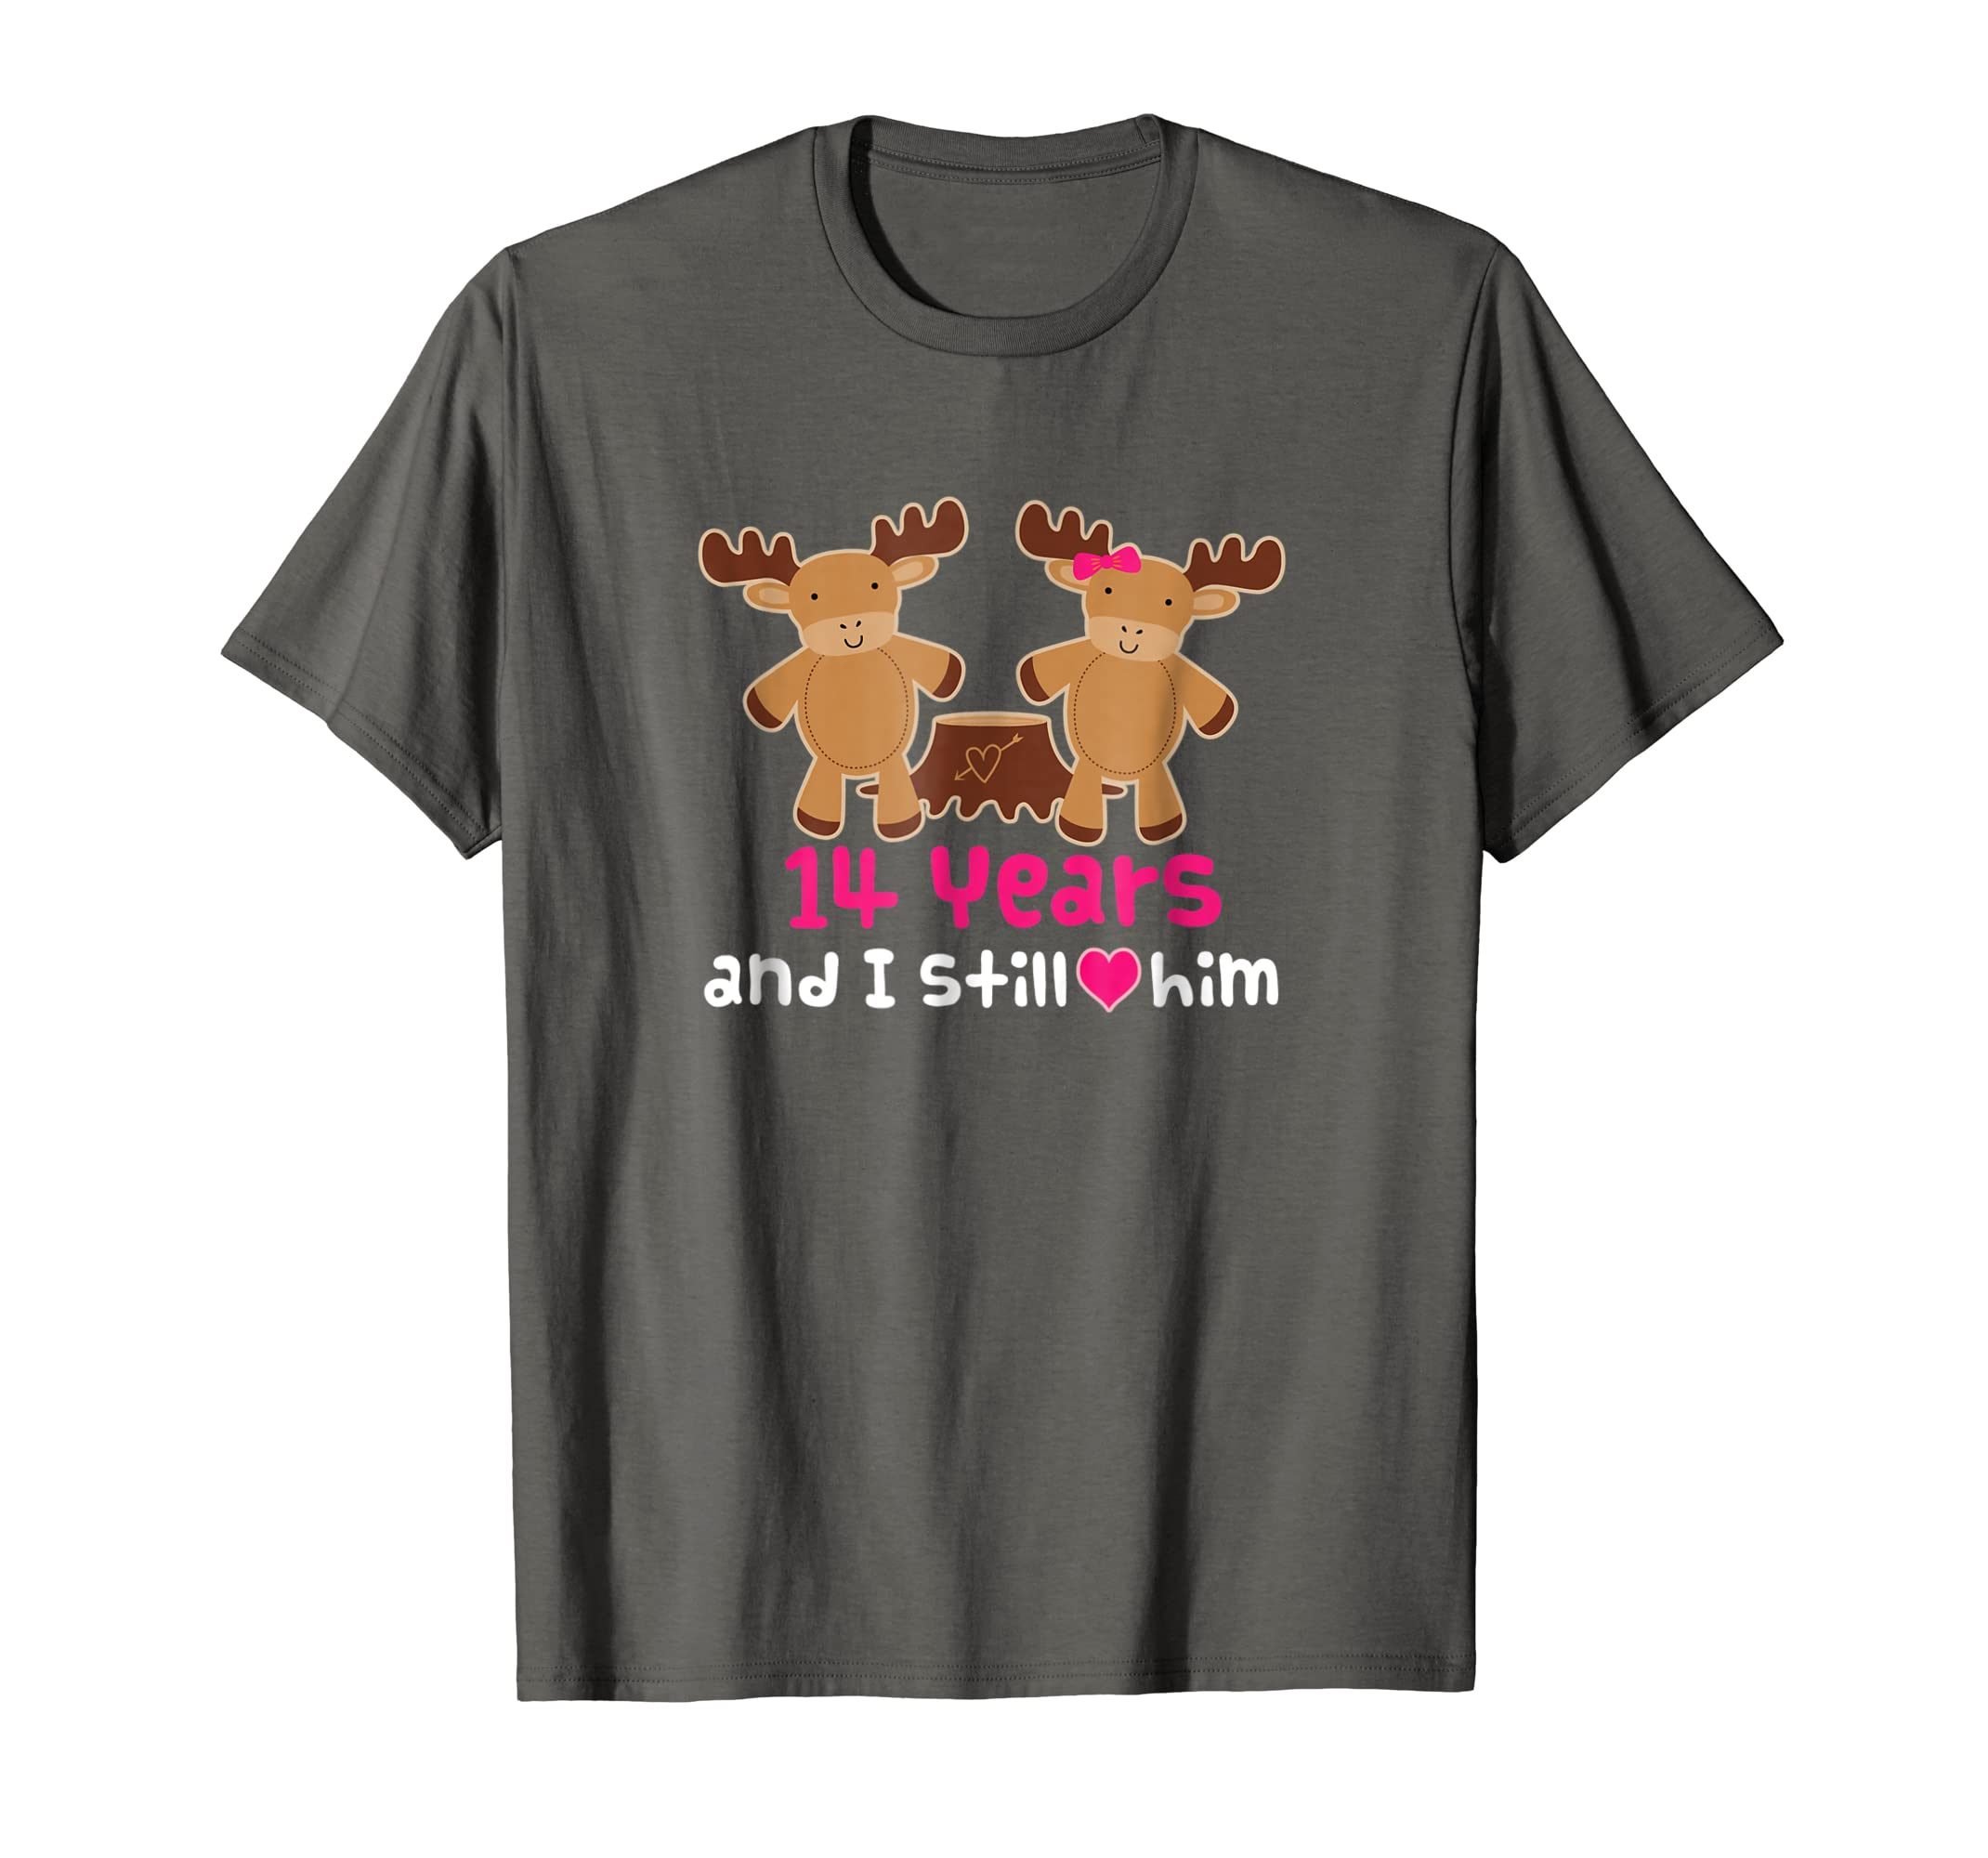 5227a9f38e Amazon.com: 14th Anniversary T-shirt Funny Moose Couples Gift Tee: Clothing